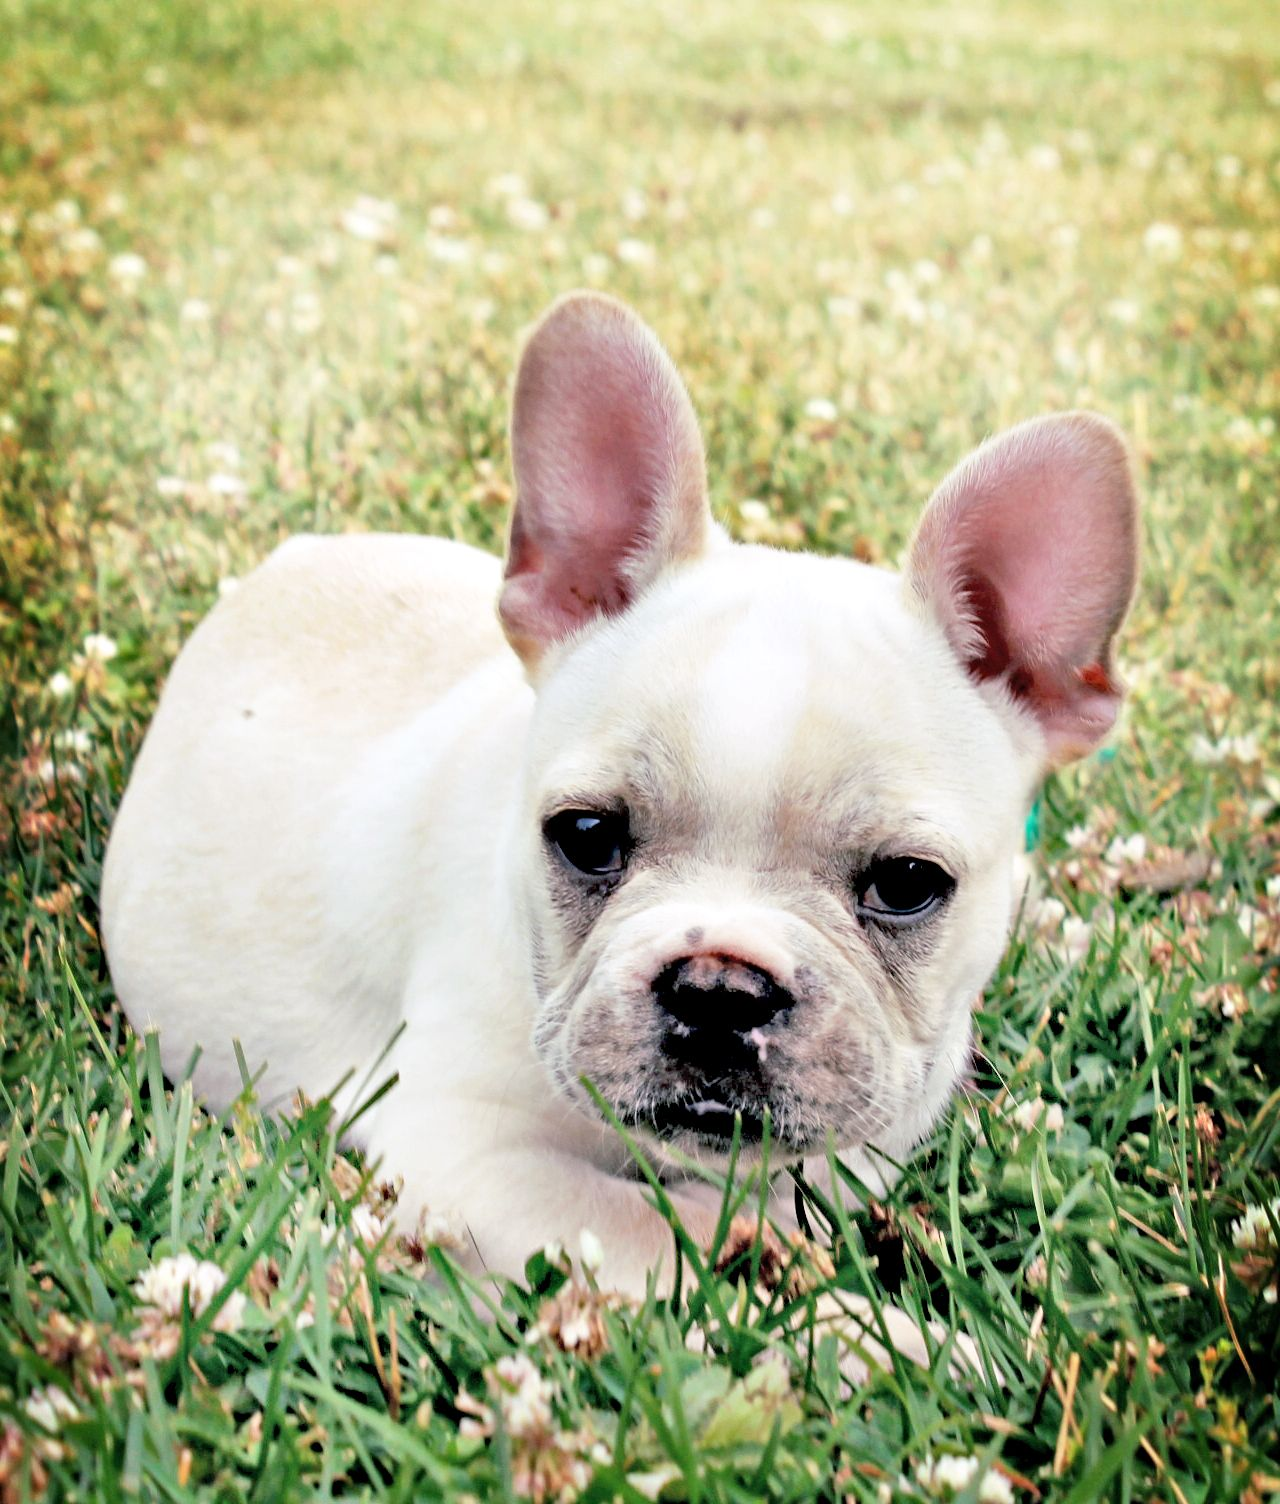 One of our French Bulldog puppies Casper. He is fawn and